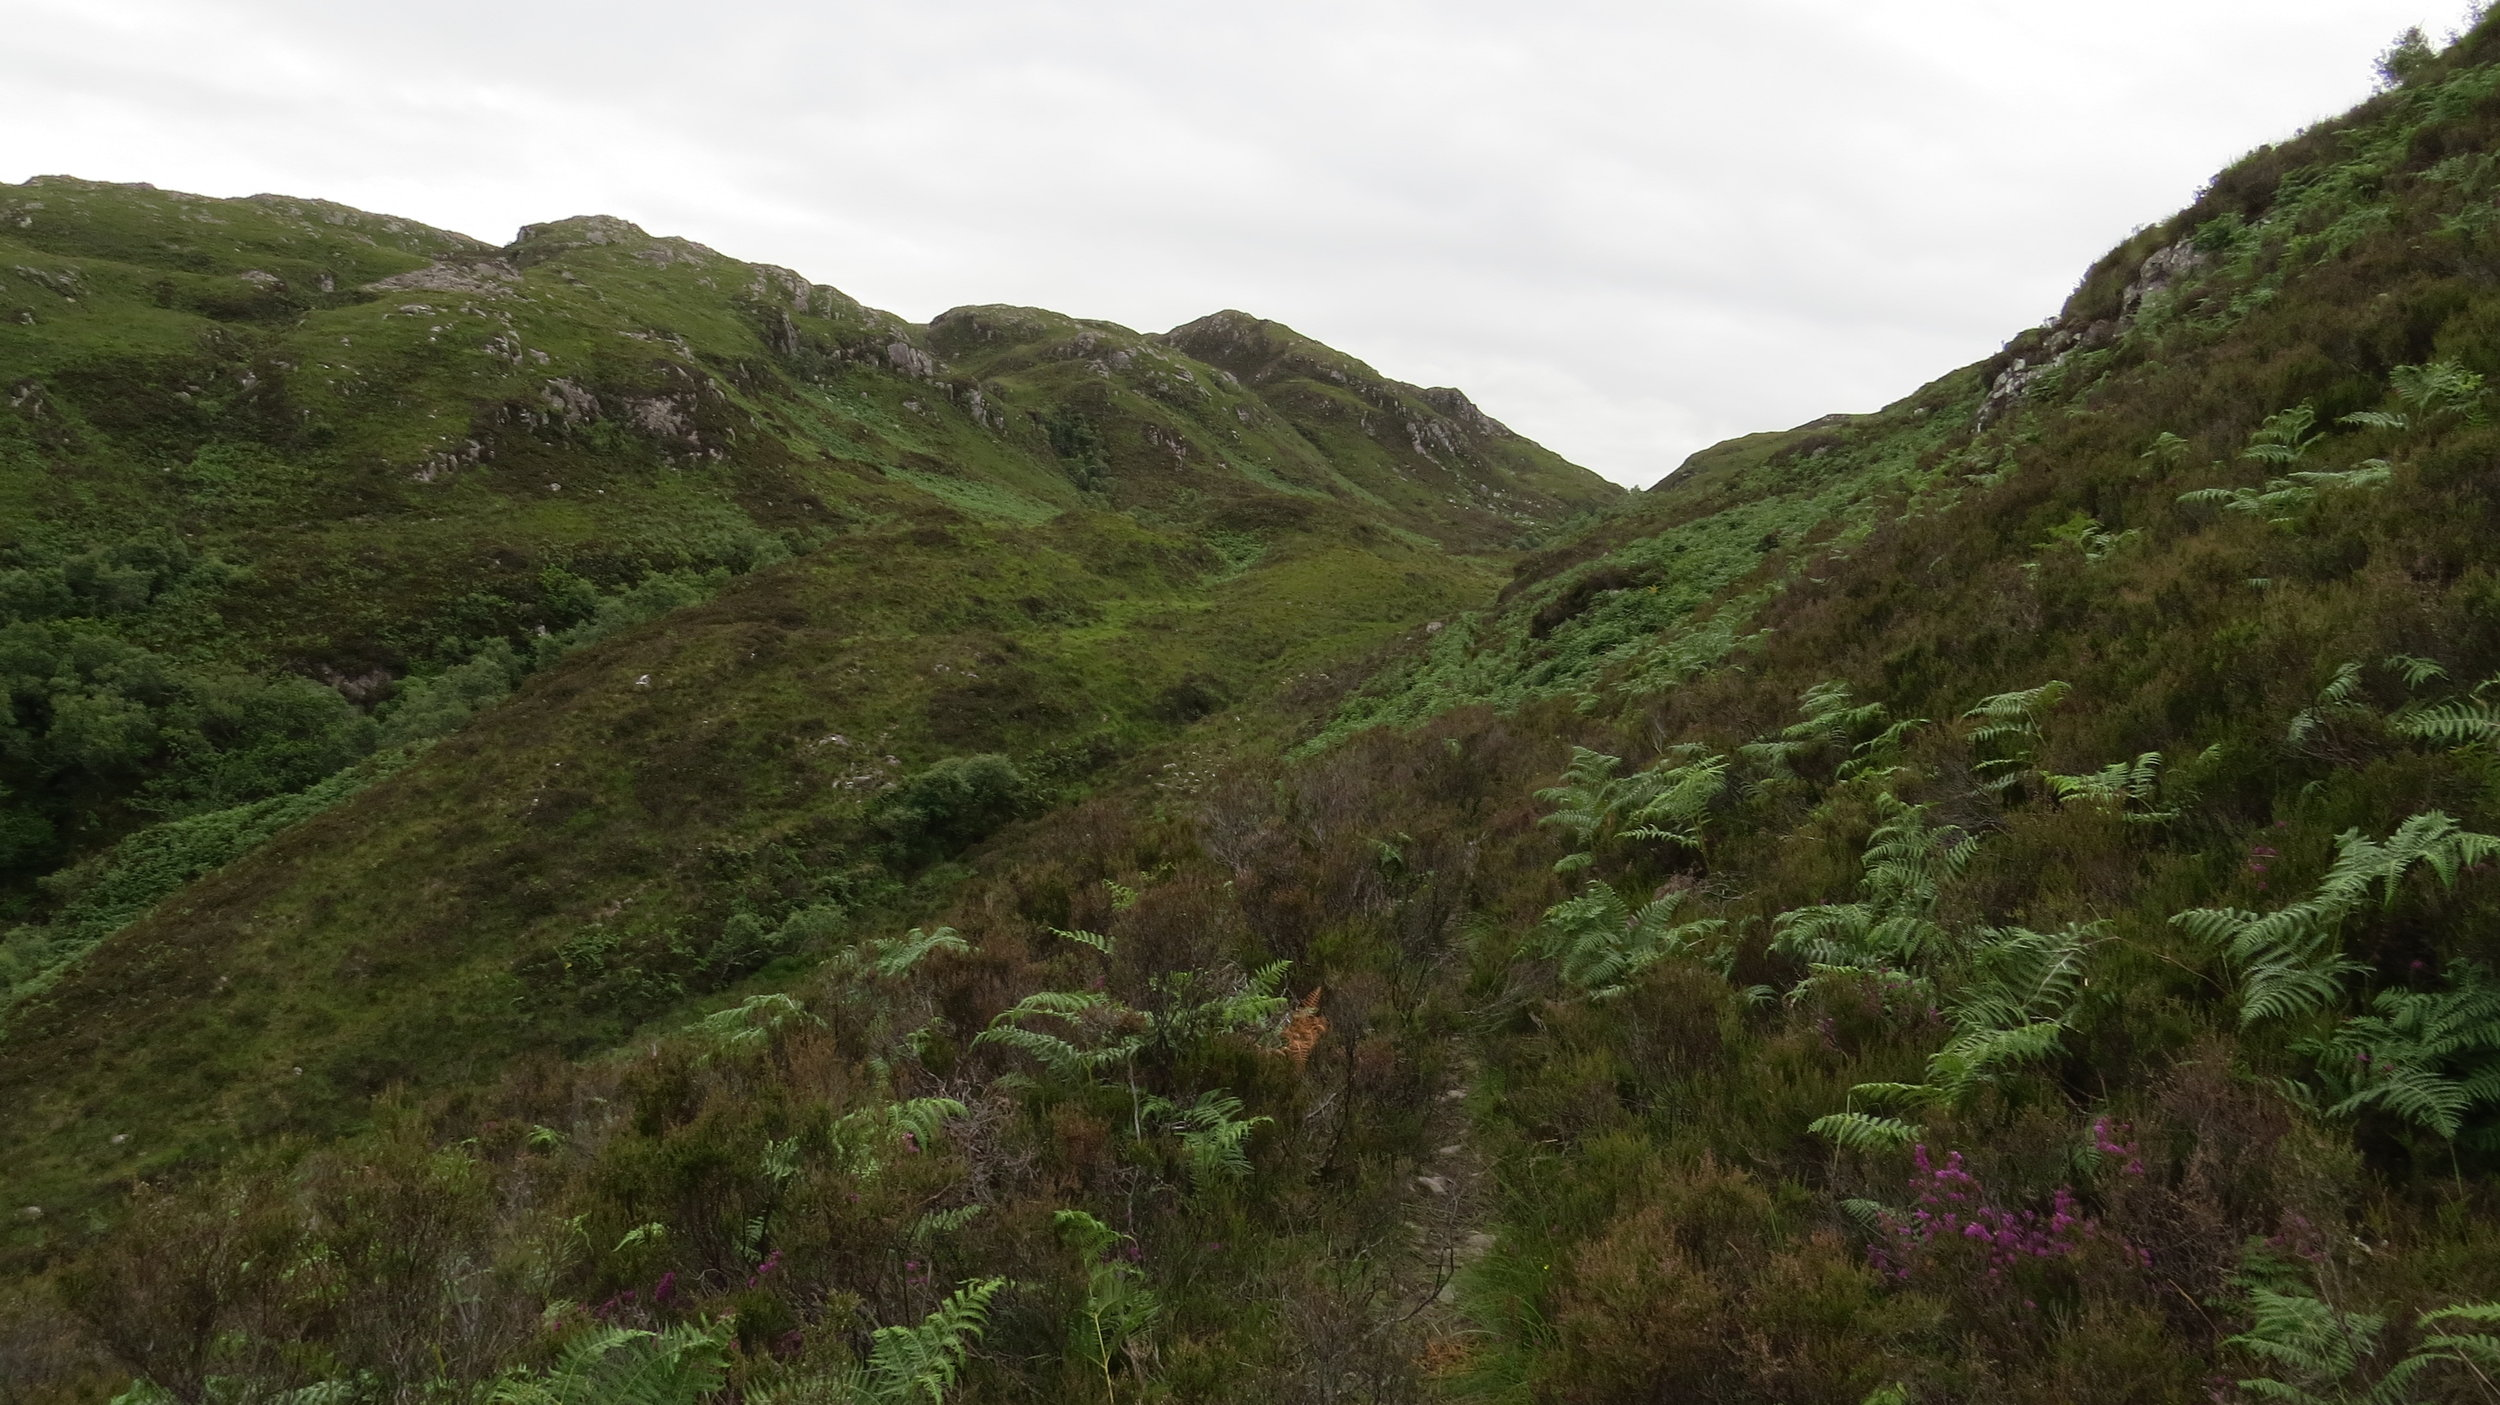 Narrow Winding Path to the Top